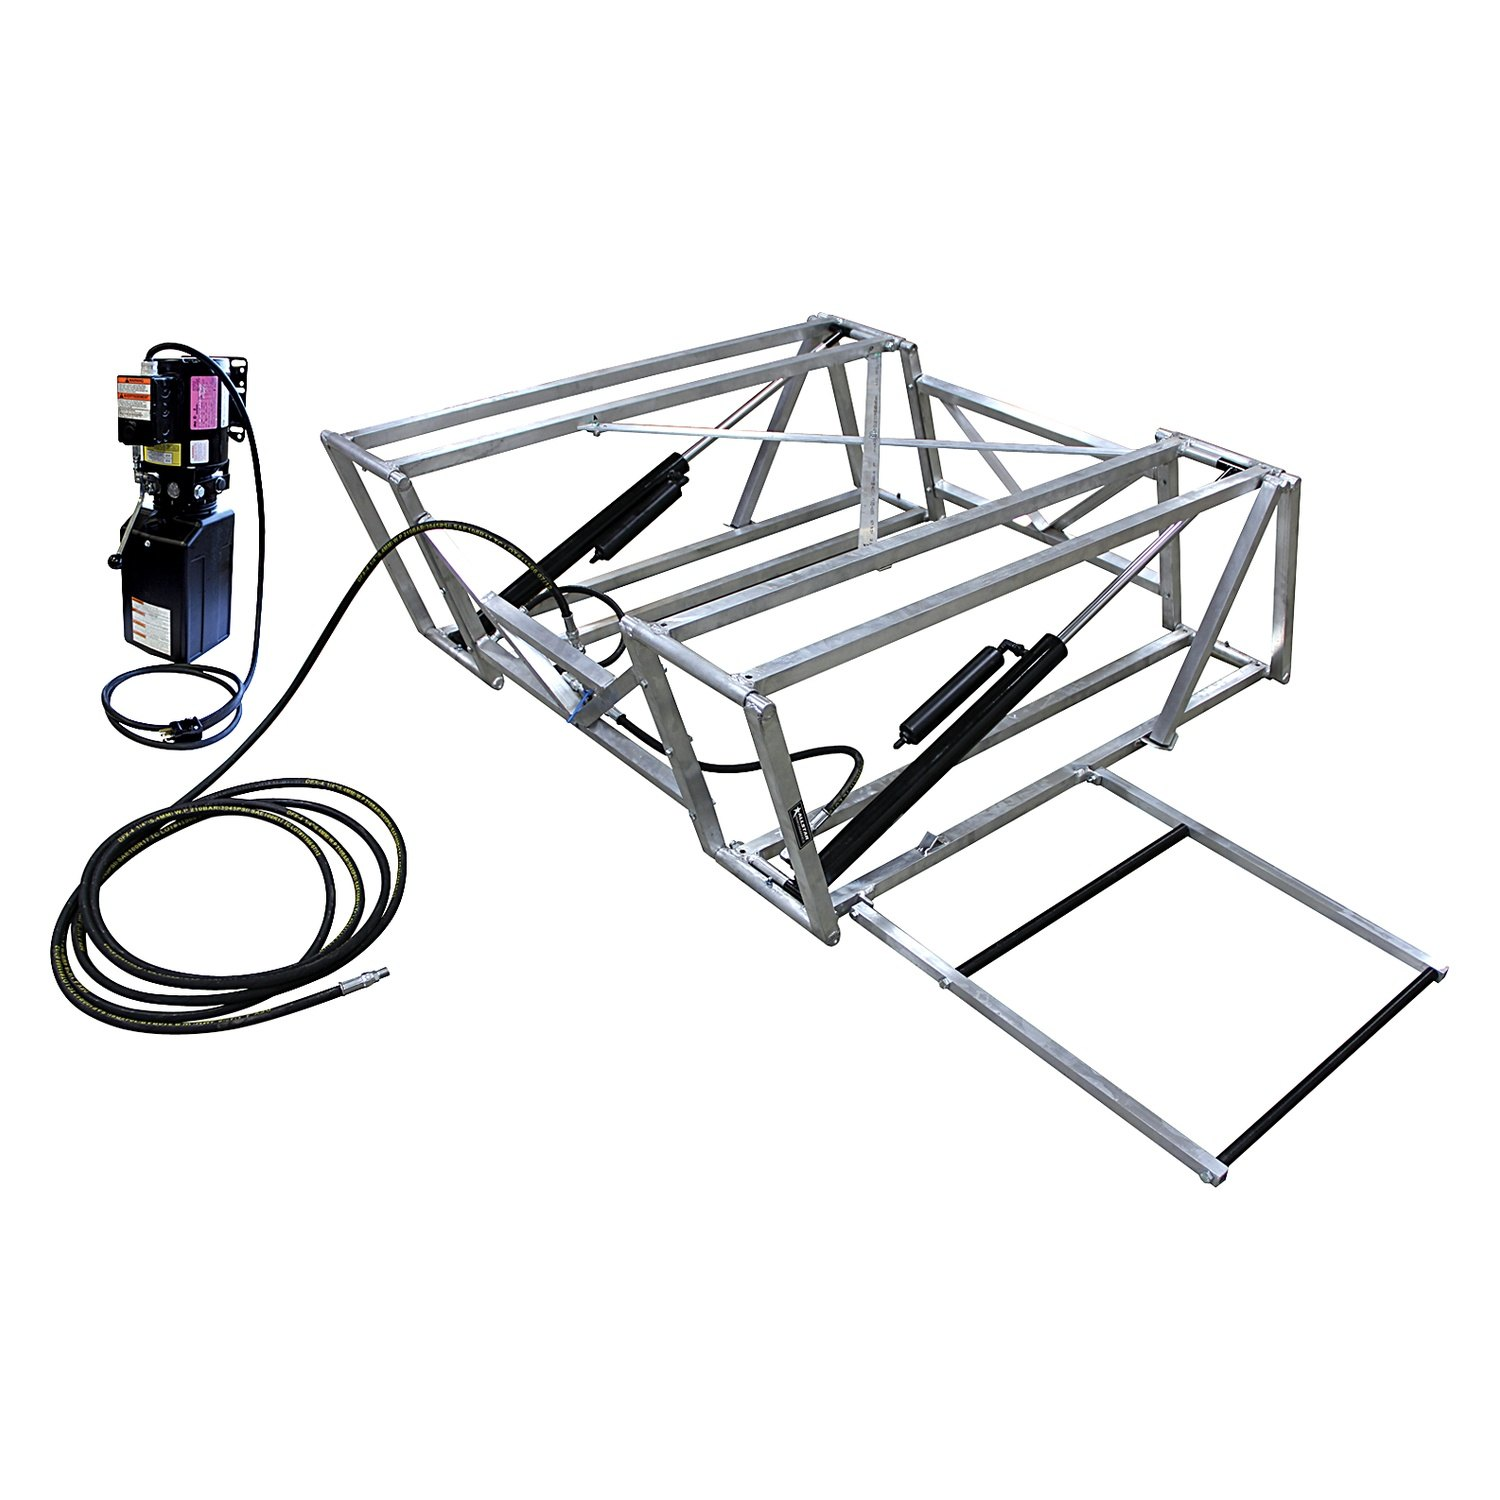 Race Car Chassis Drawings Race Car Chassis Blueprints